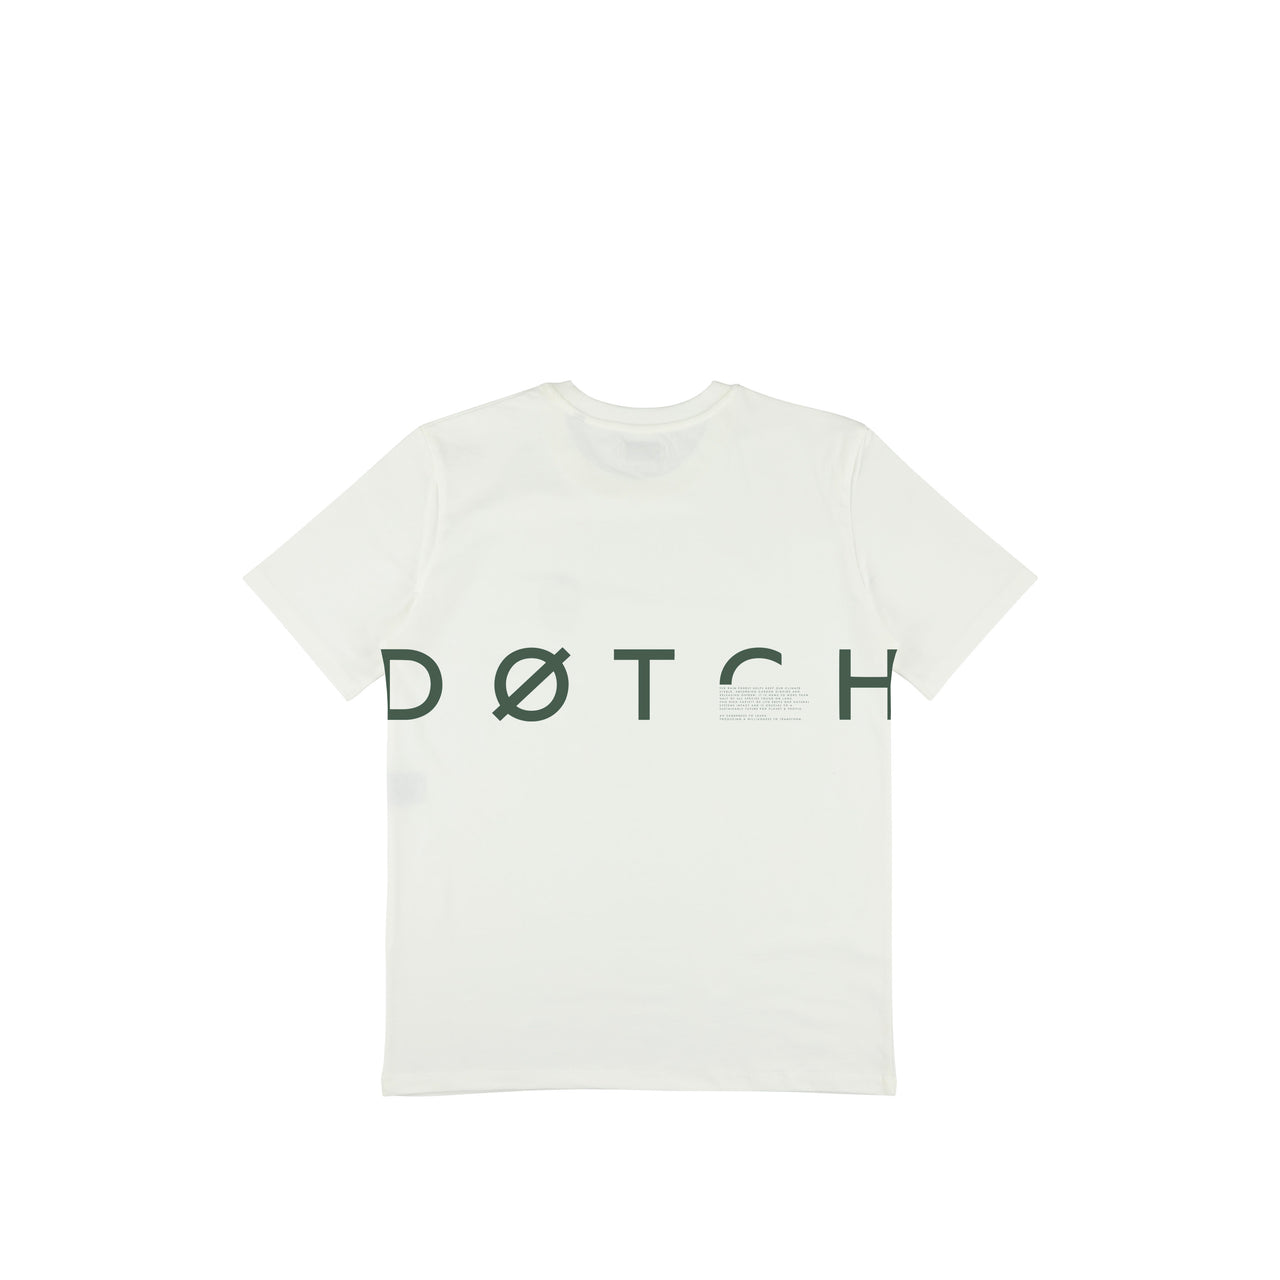 Beyond.Døtch Tee - Natural / Hunter Green